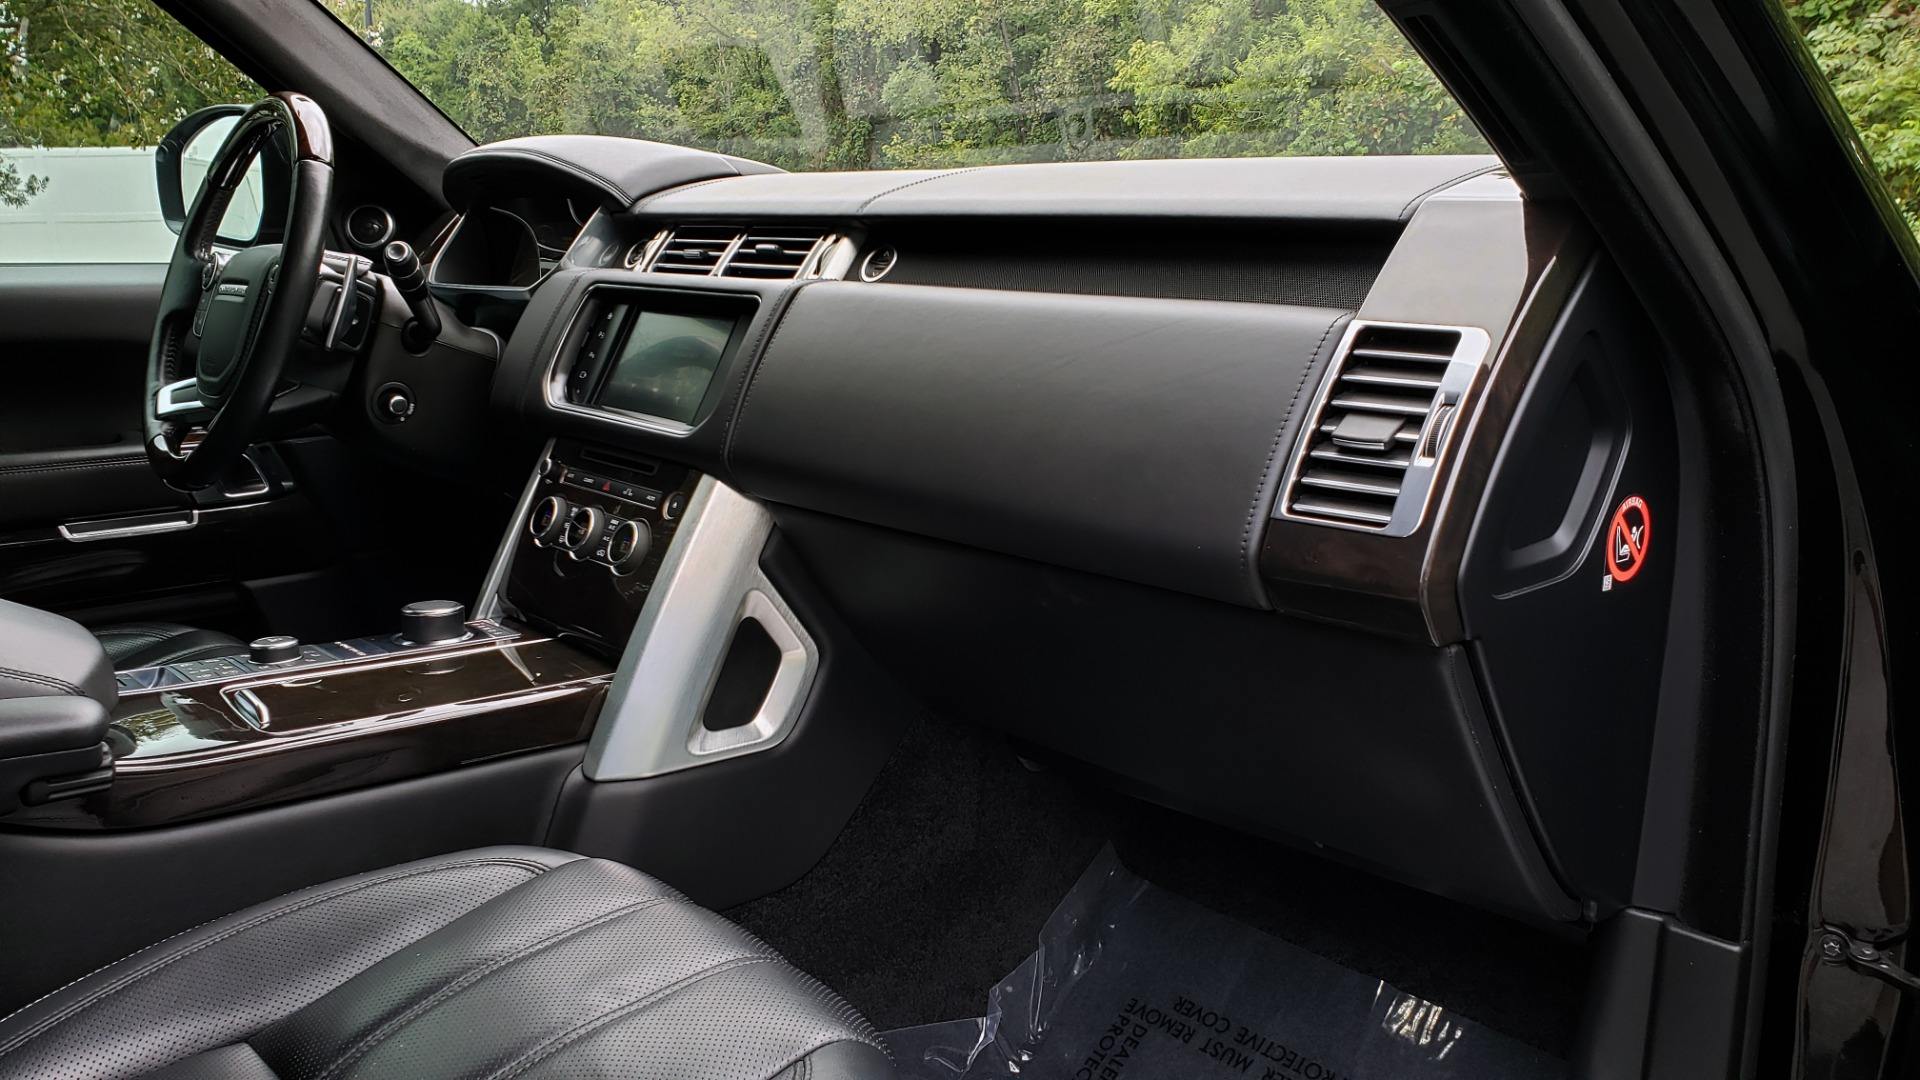 Used 2016 Land Rover RANGE ROVER AUTOBIOGRAPHY / SC-V8 / LWB / PANO-ROOF / NAV / MERIDIAN / ENT / REARVIEW for sale Sold at Formula Imports in Charlotte NC 28227 86